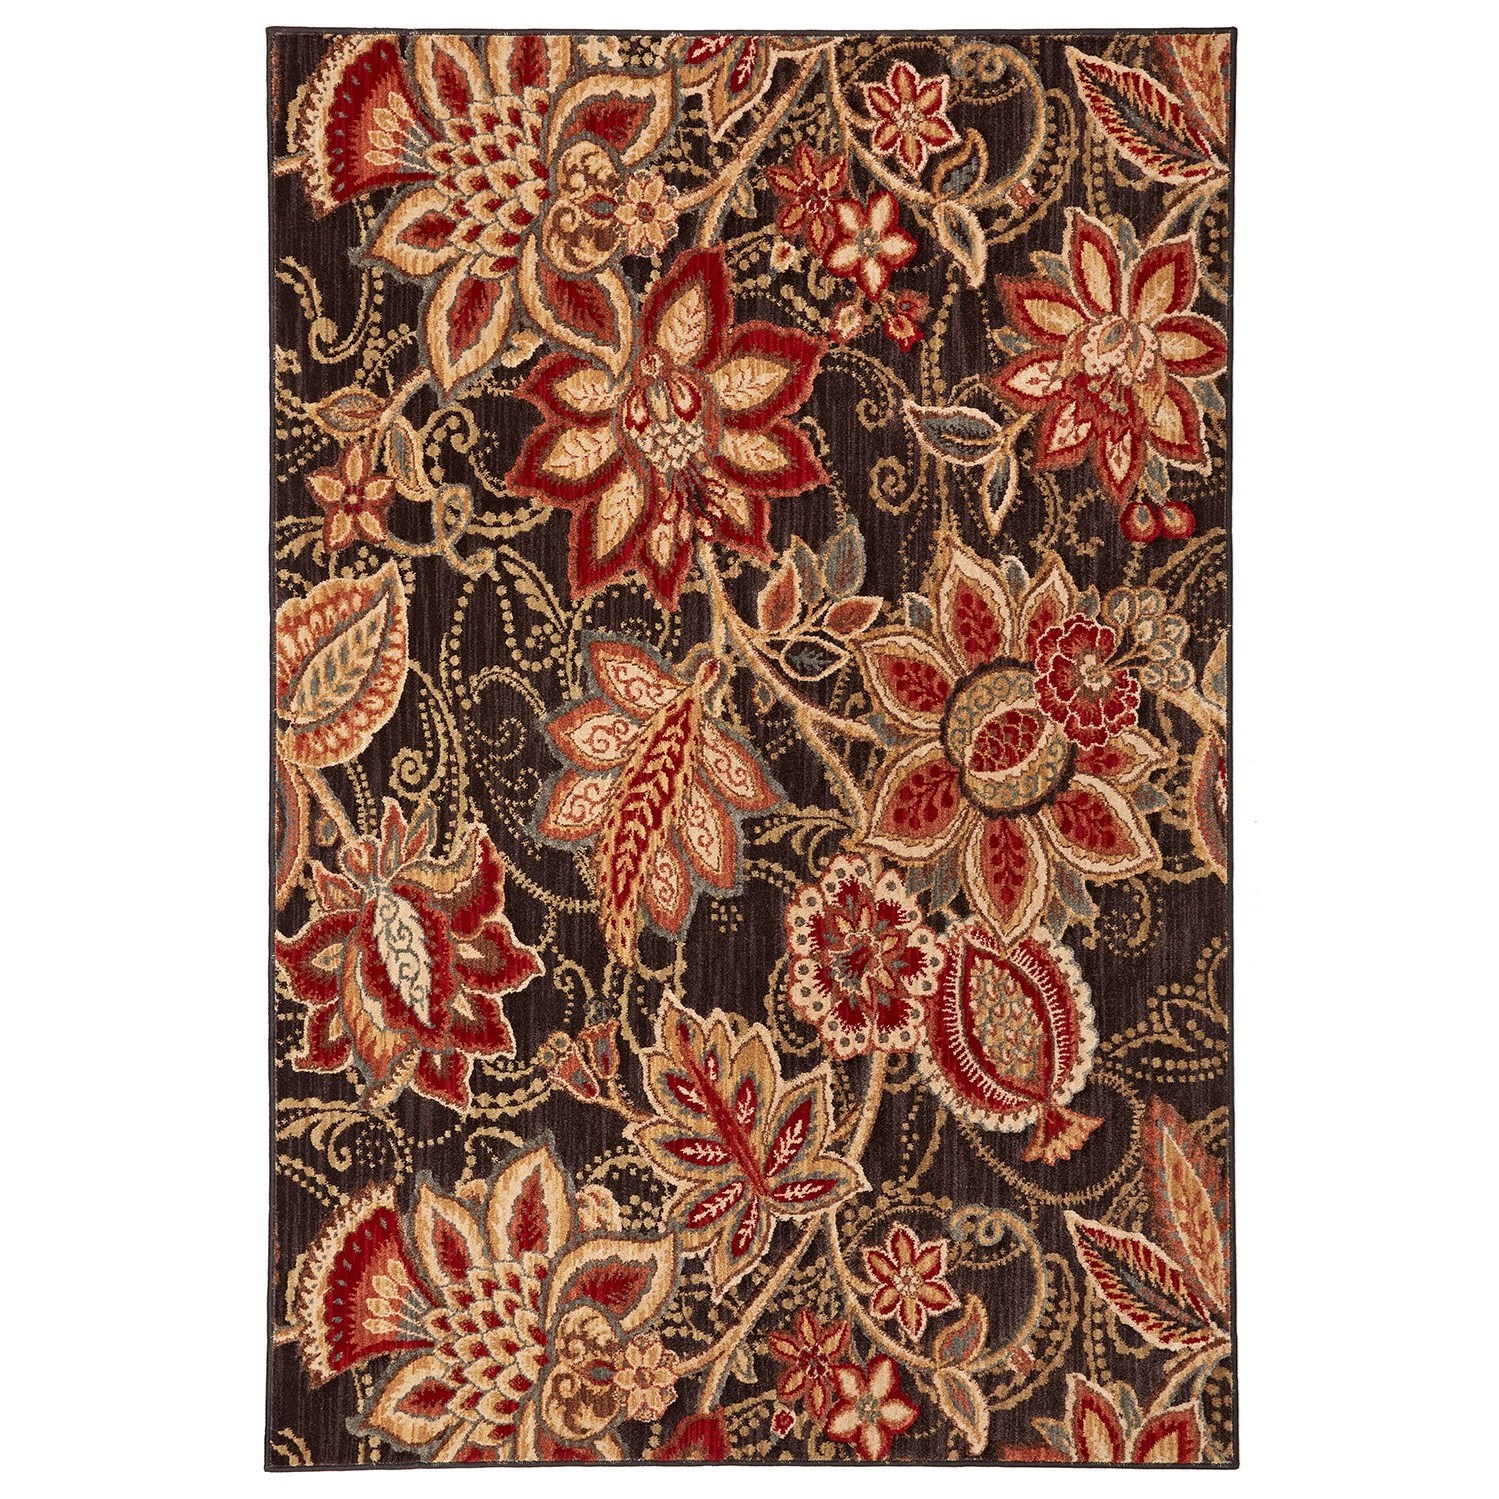 """Dryden 3' 6""""x5' 6"""" Concord Black Area Rug by American Rug Craftsmen at Alison Craig Home Furnishings"""